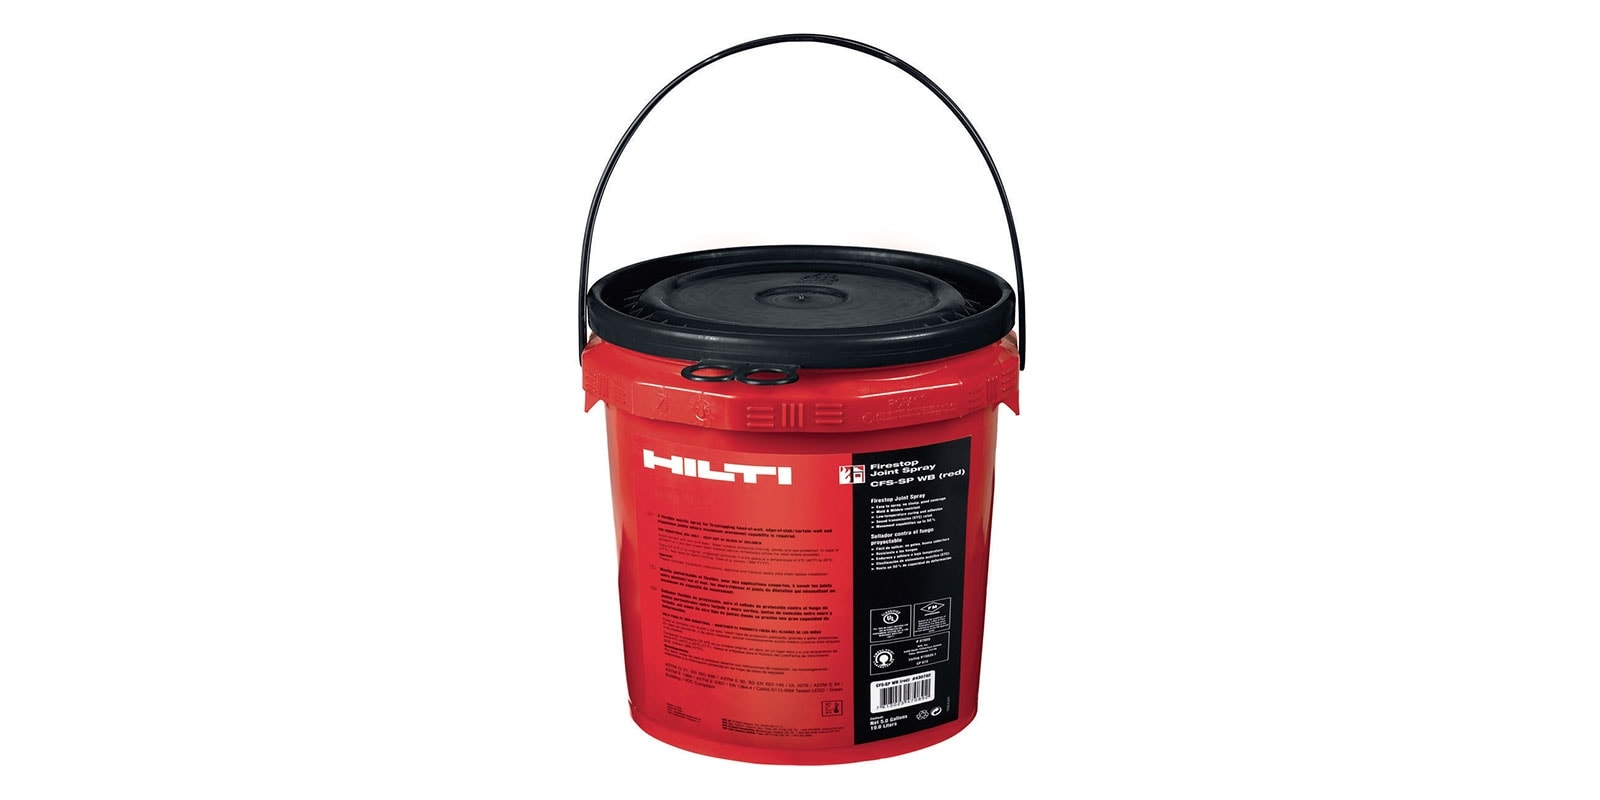 Hilti sealant and joint spray